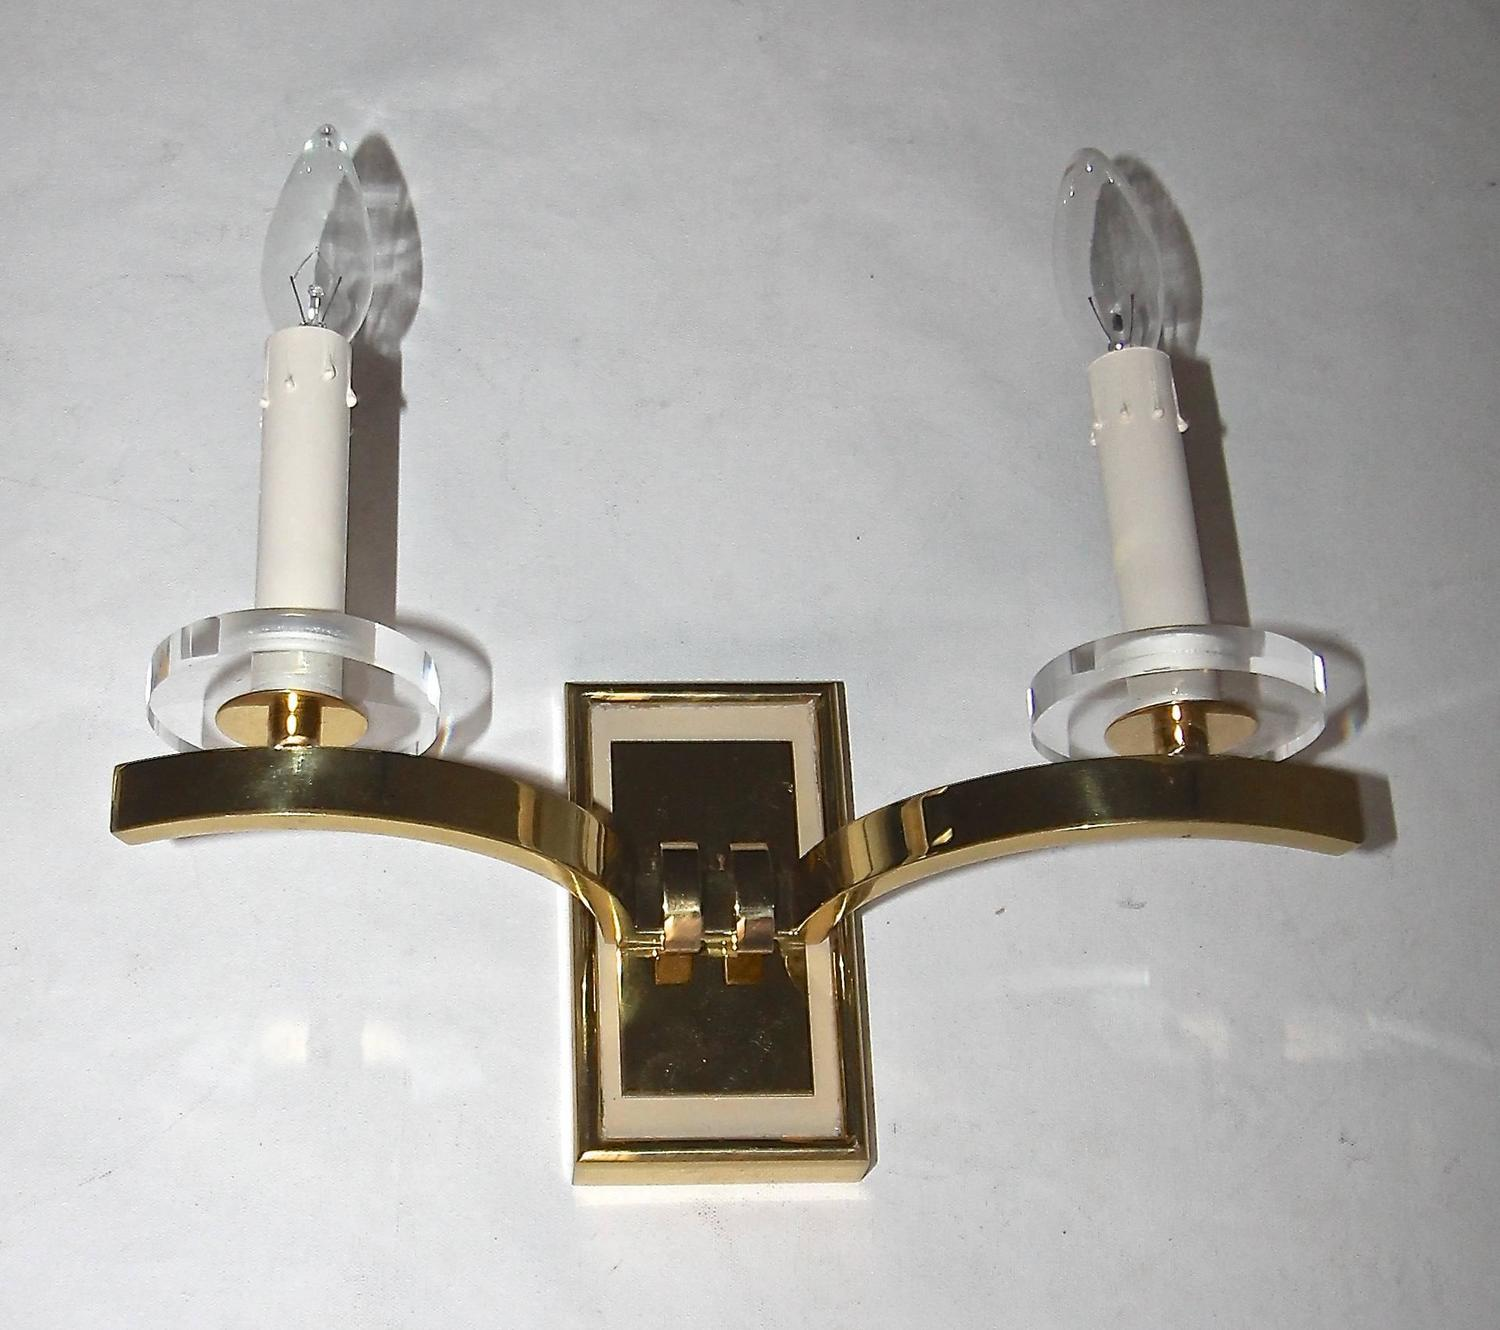 Pair of French Moderne Brass Wall Sconces For Sale at 1stdibs